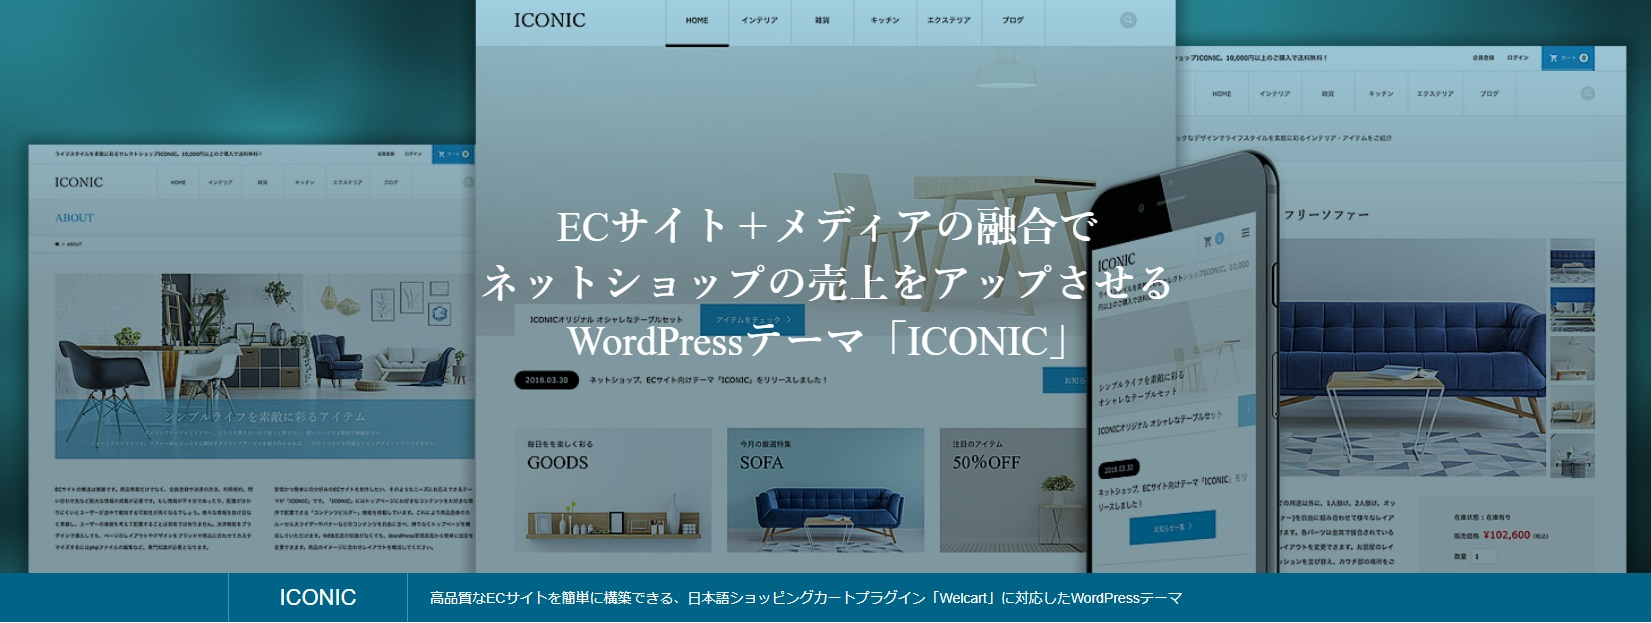 wordpress-theme-iconic-tcd062